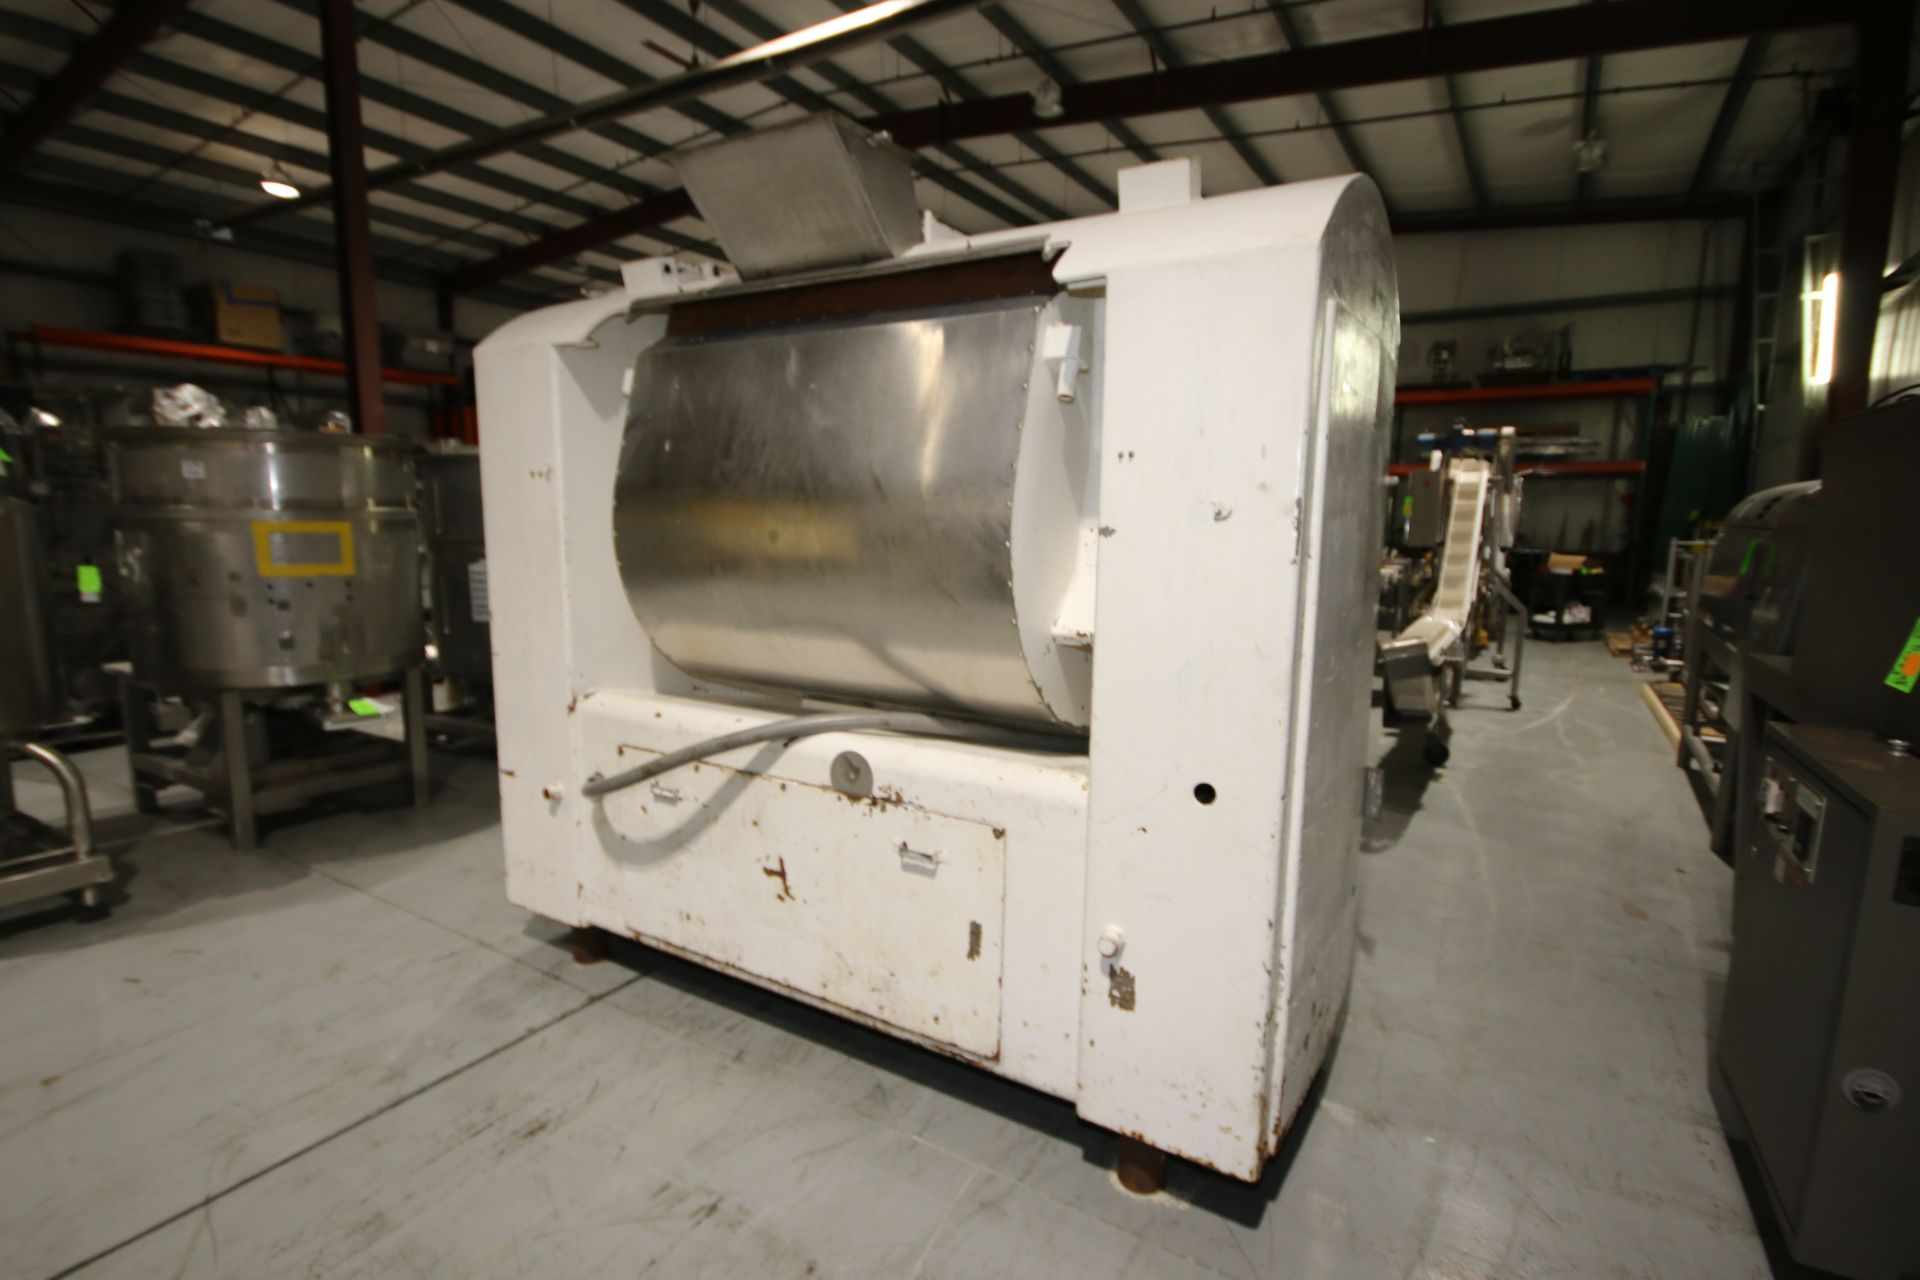 Lot 28 - Day Double Wall Single Arm S/S Dough Mixer, S/N 81306, with S/S Agitation Shaft, with Top Mounted